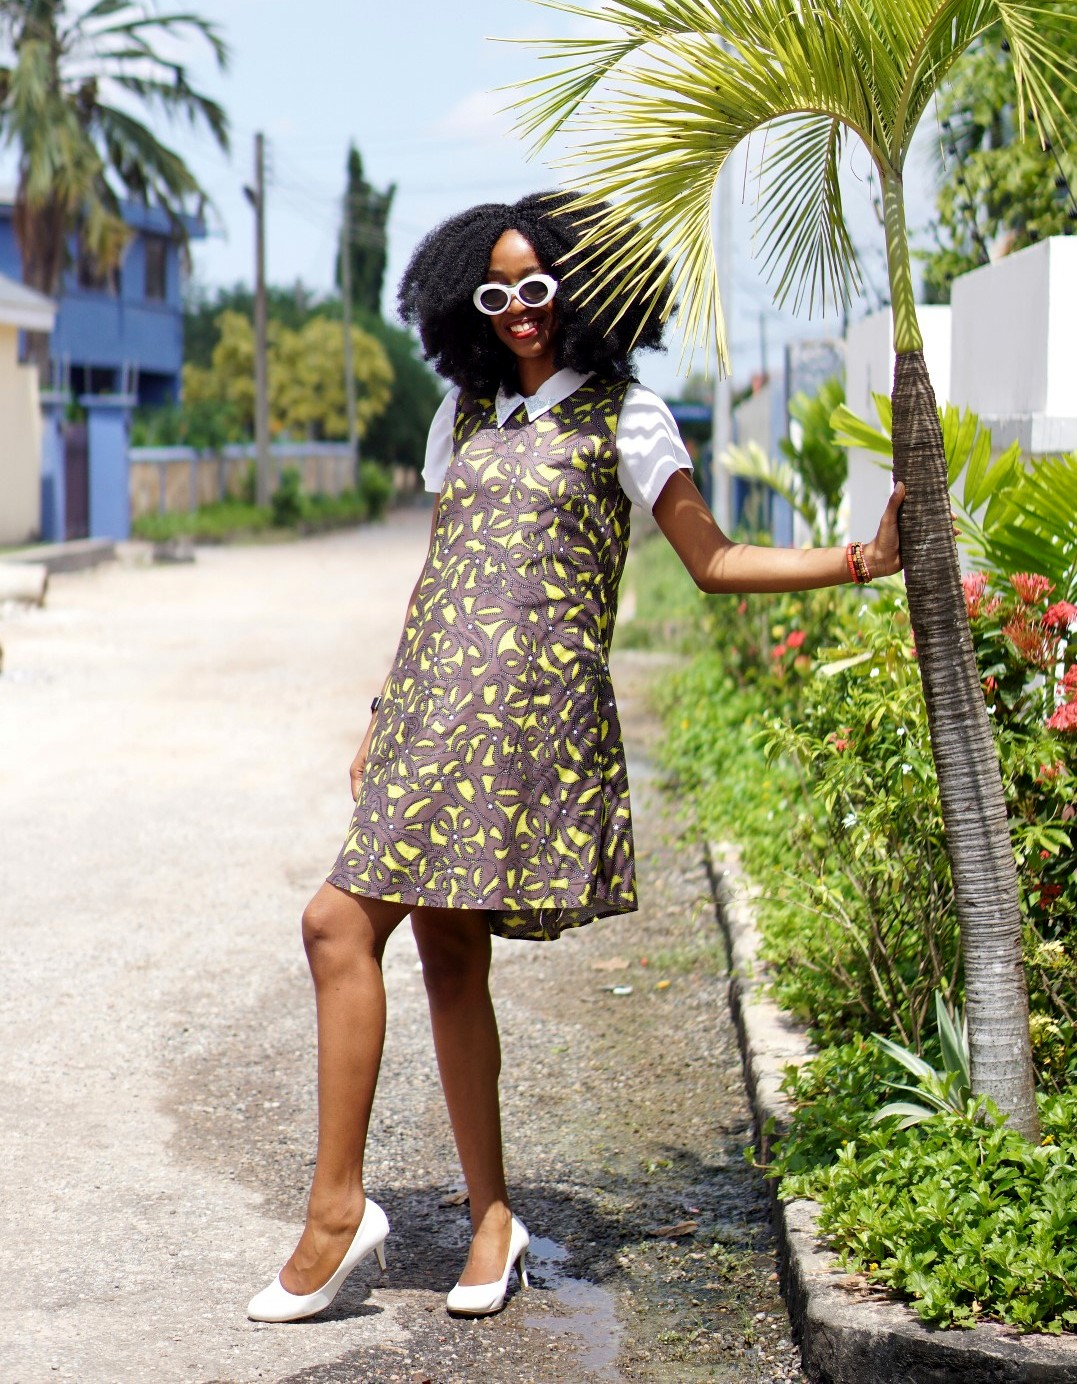 Ankara fashion, Nigeria fashion blogger Cassie daves in sleeveless ankara shift dress